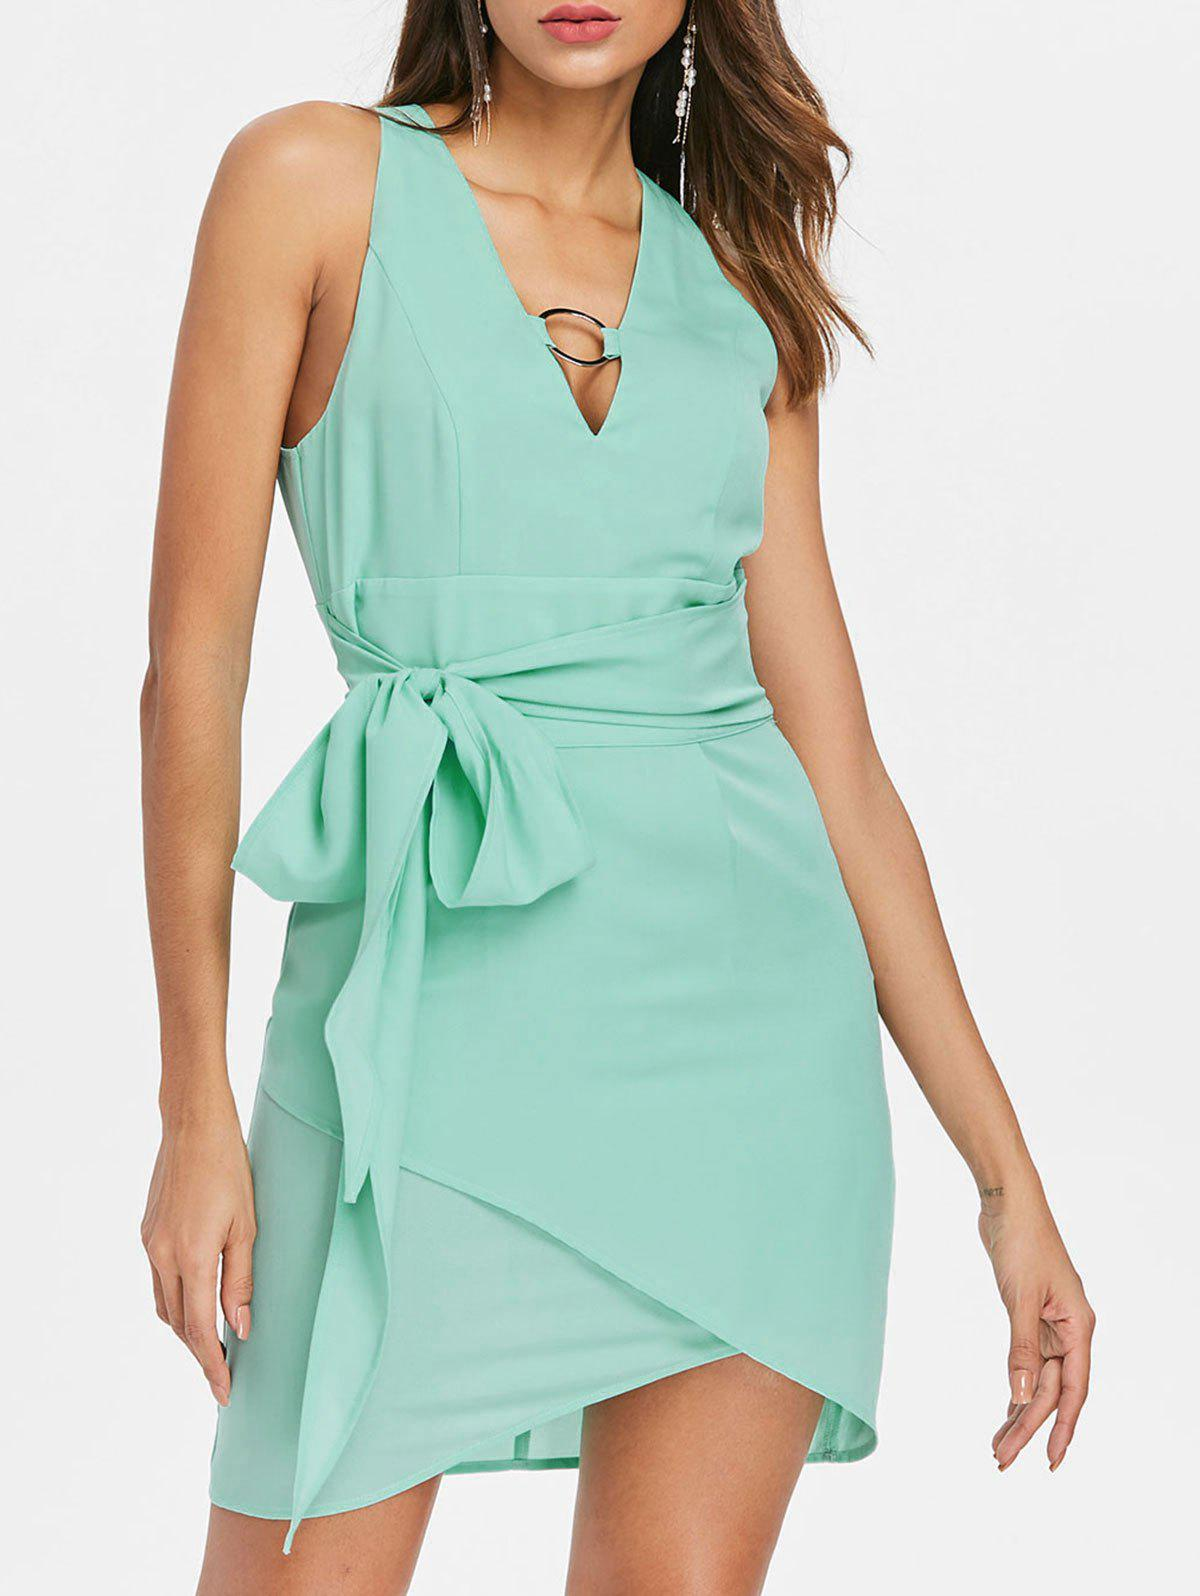 Unique Plunging Neckline Chiffon Bodycon Dress